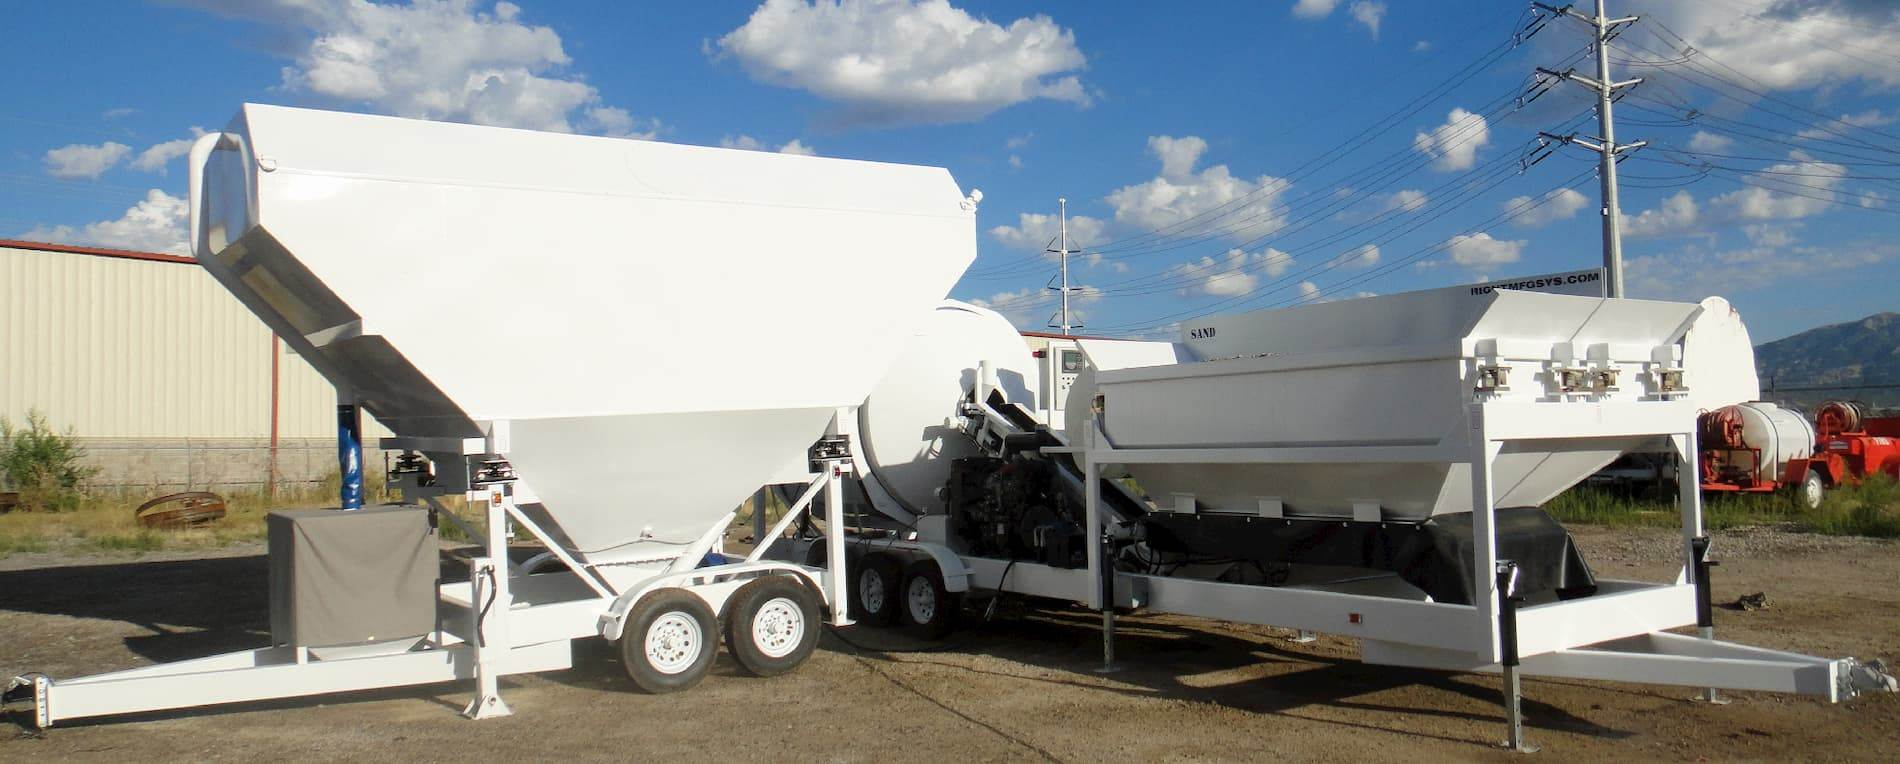 Custom Mix Right Concrete Mixers, Batch Plants & Cement Silos